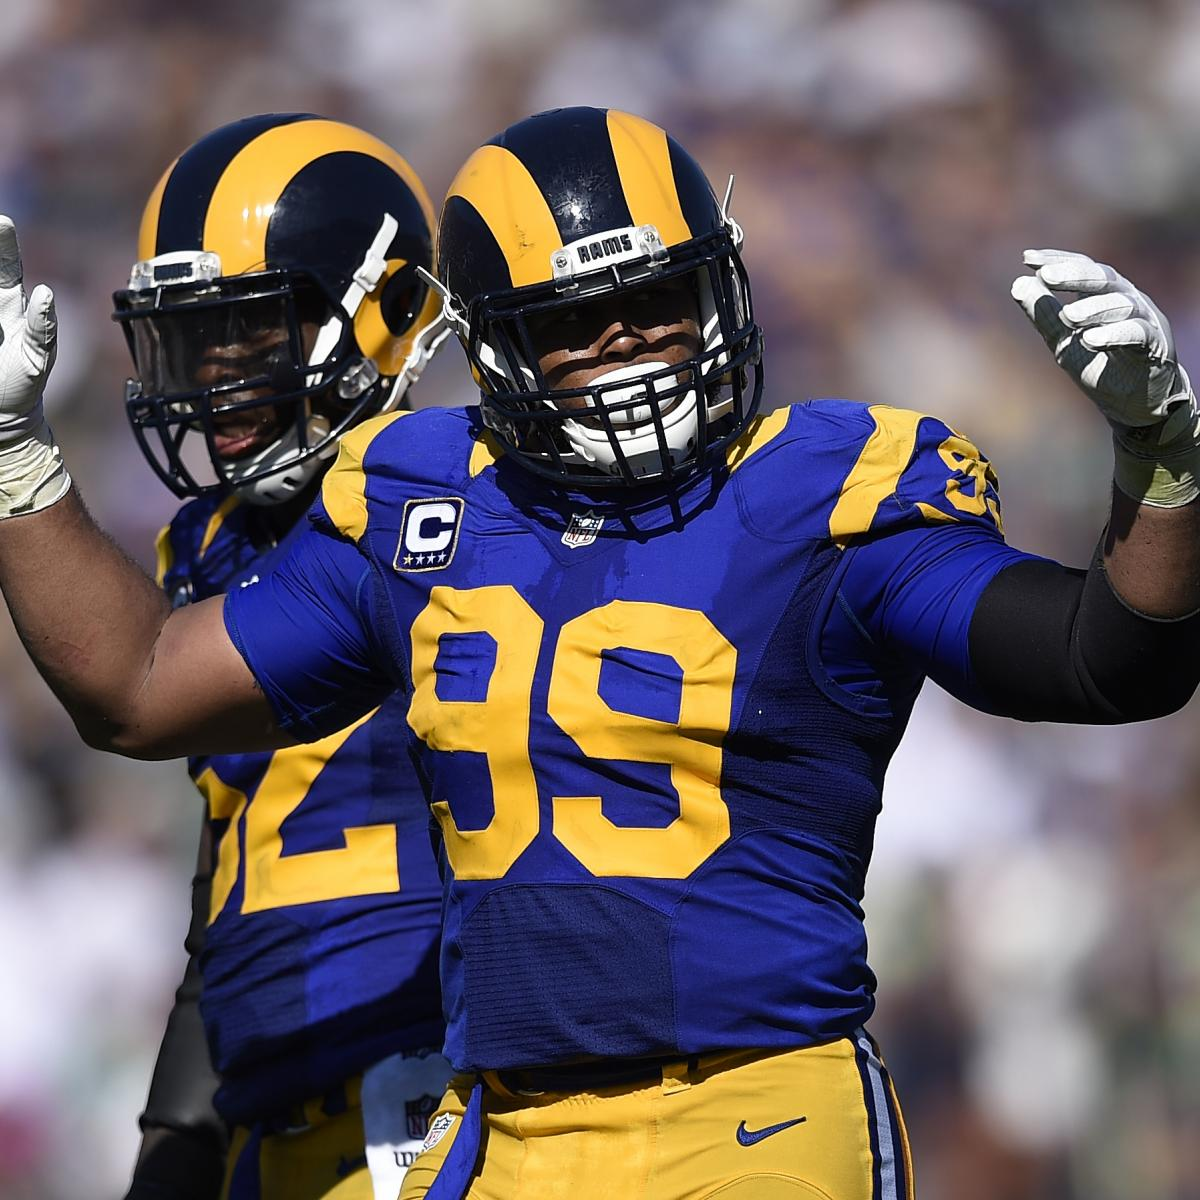 Defensive tackle Aaron Donald said he wont show up to the Rams OTAs as he looks to restructure his contract